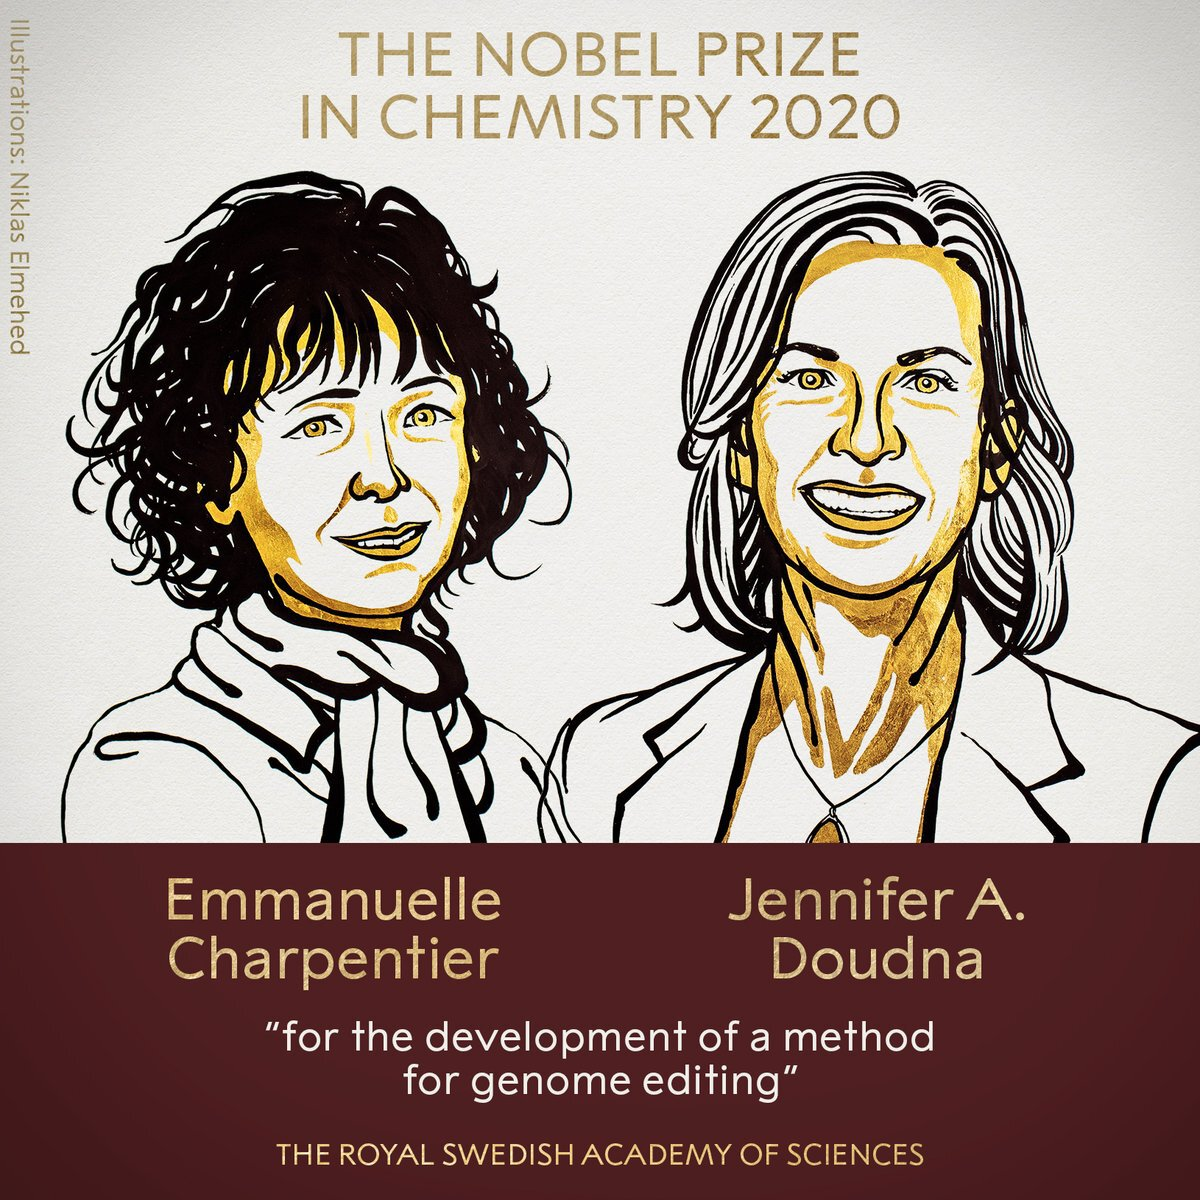 "<a href=""https://www.nobelprize.org/prizes/chemistry/2020/summary/"">The 2020 Nobel Prize in Chemistry has been awarded jointly to Emmanuelle Charpentier and Jennifer A. Doudna for the development of a method for genome editing.</a><P>"